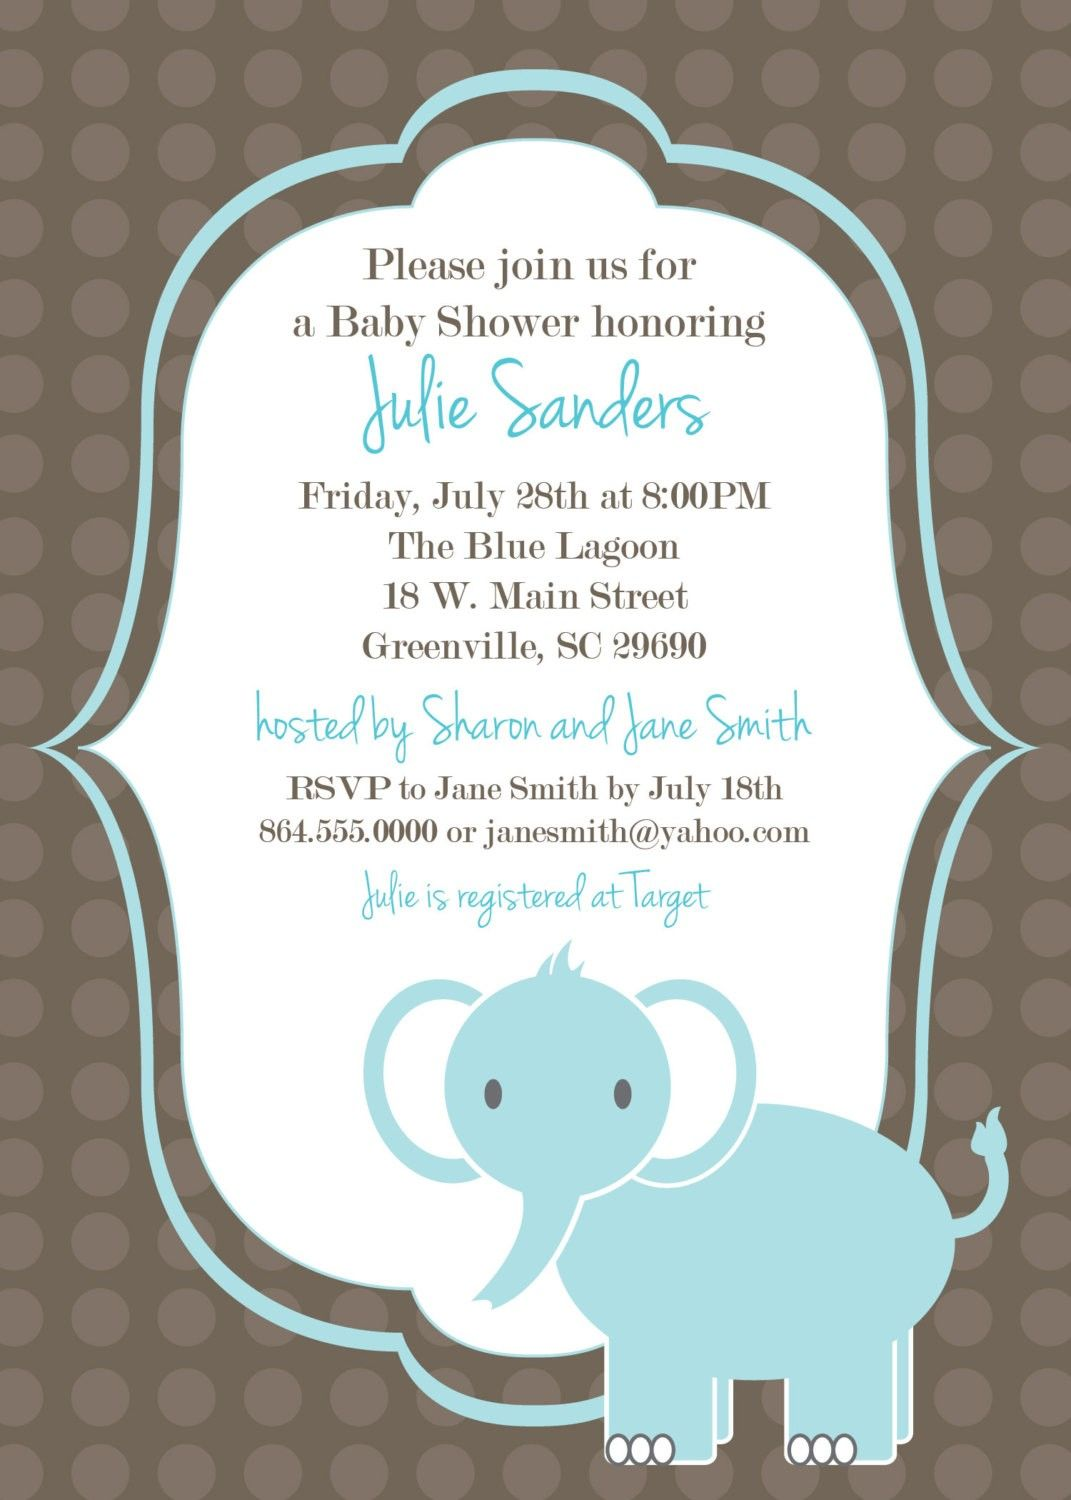 Download FREE Template Got The Free Baby Shower Invitations Baby - Print at home baby shower invitation templates